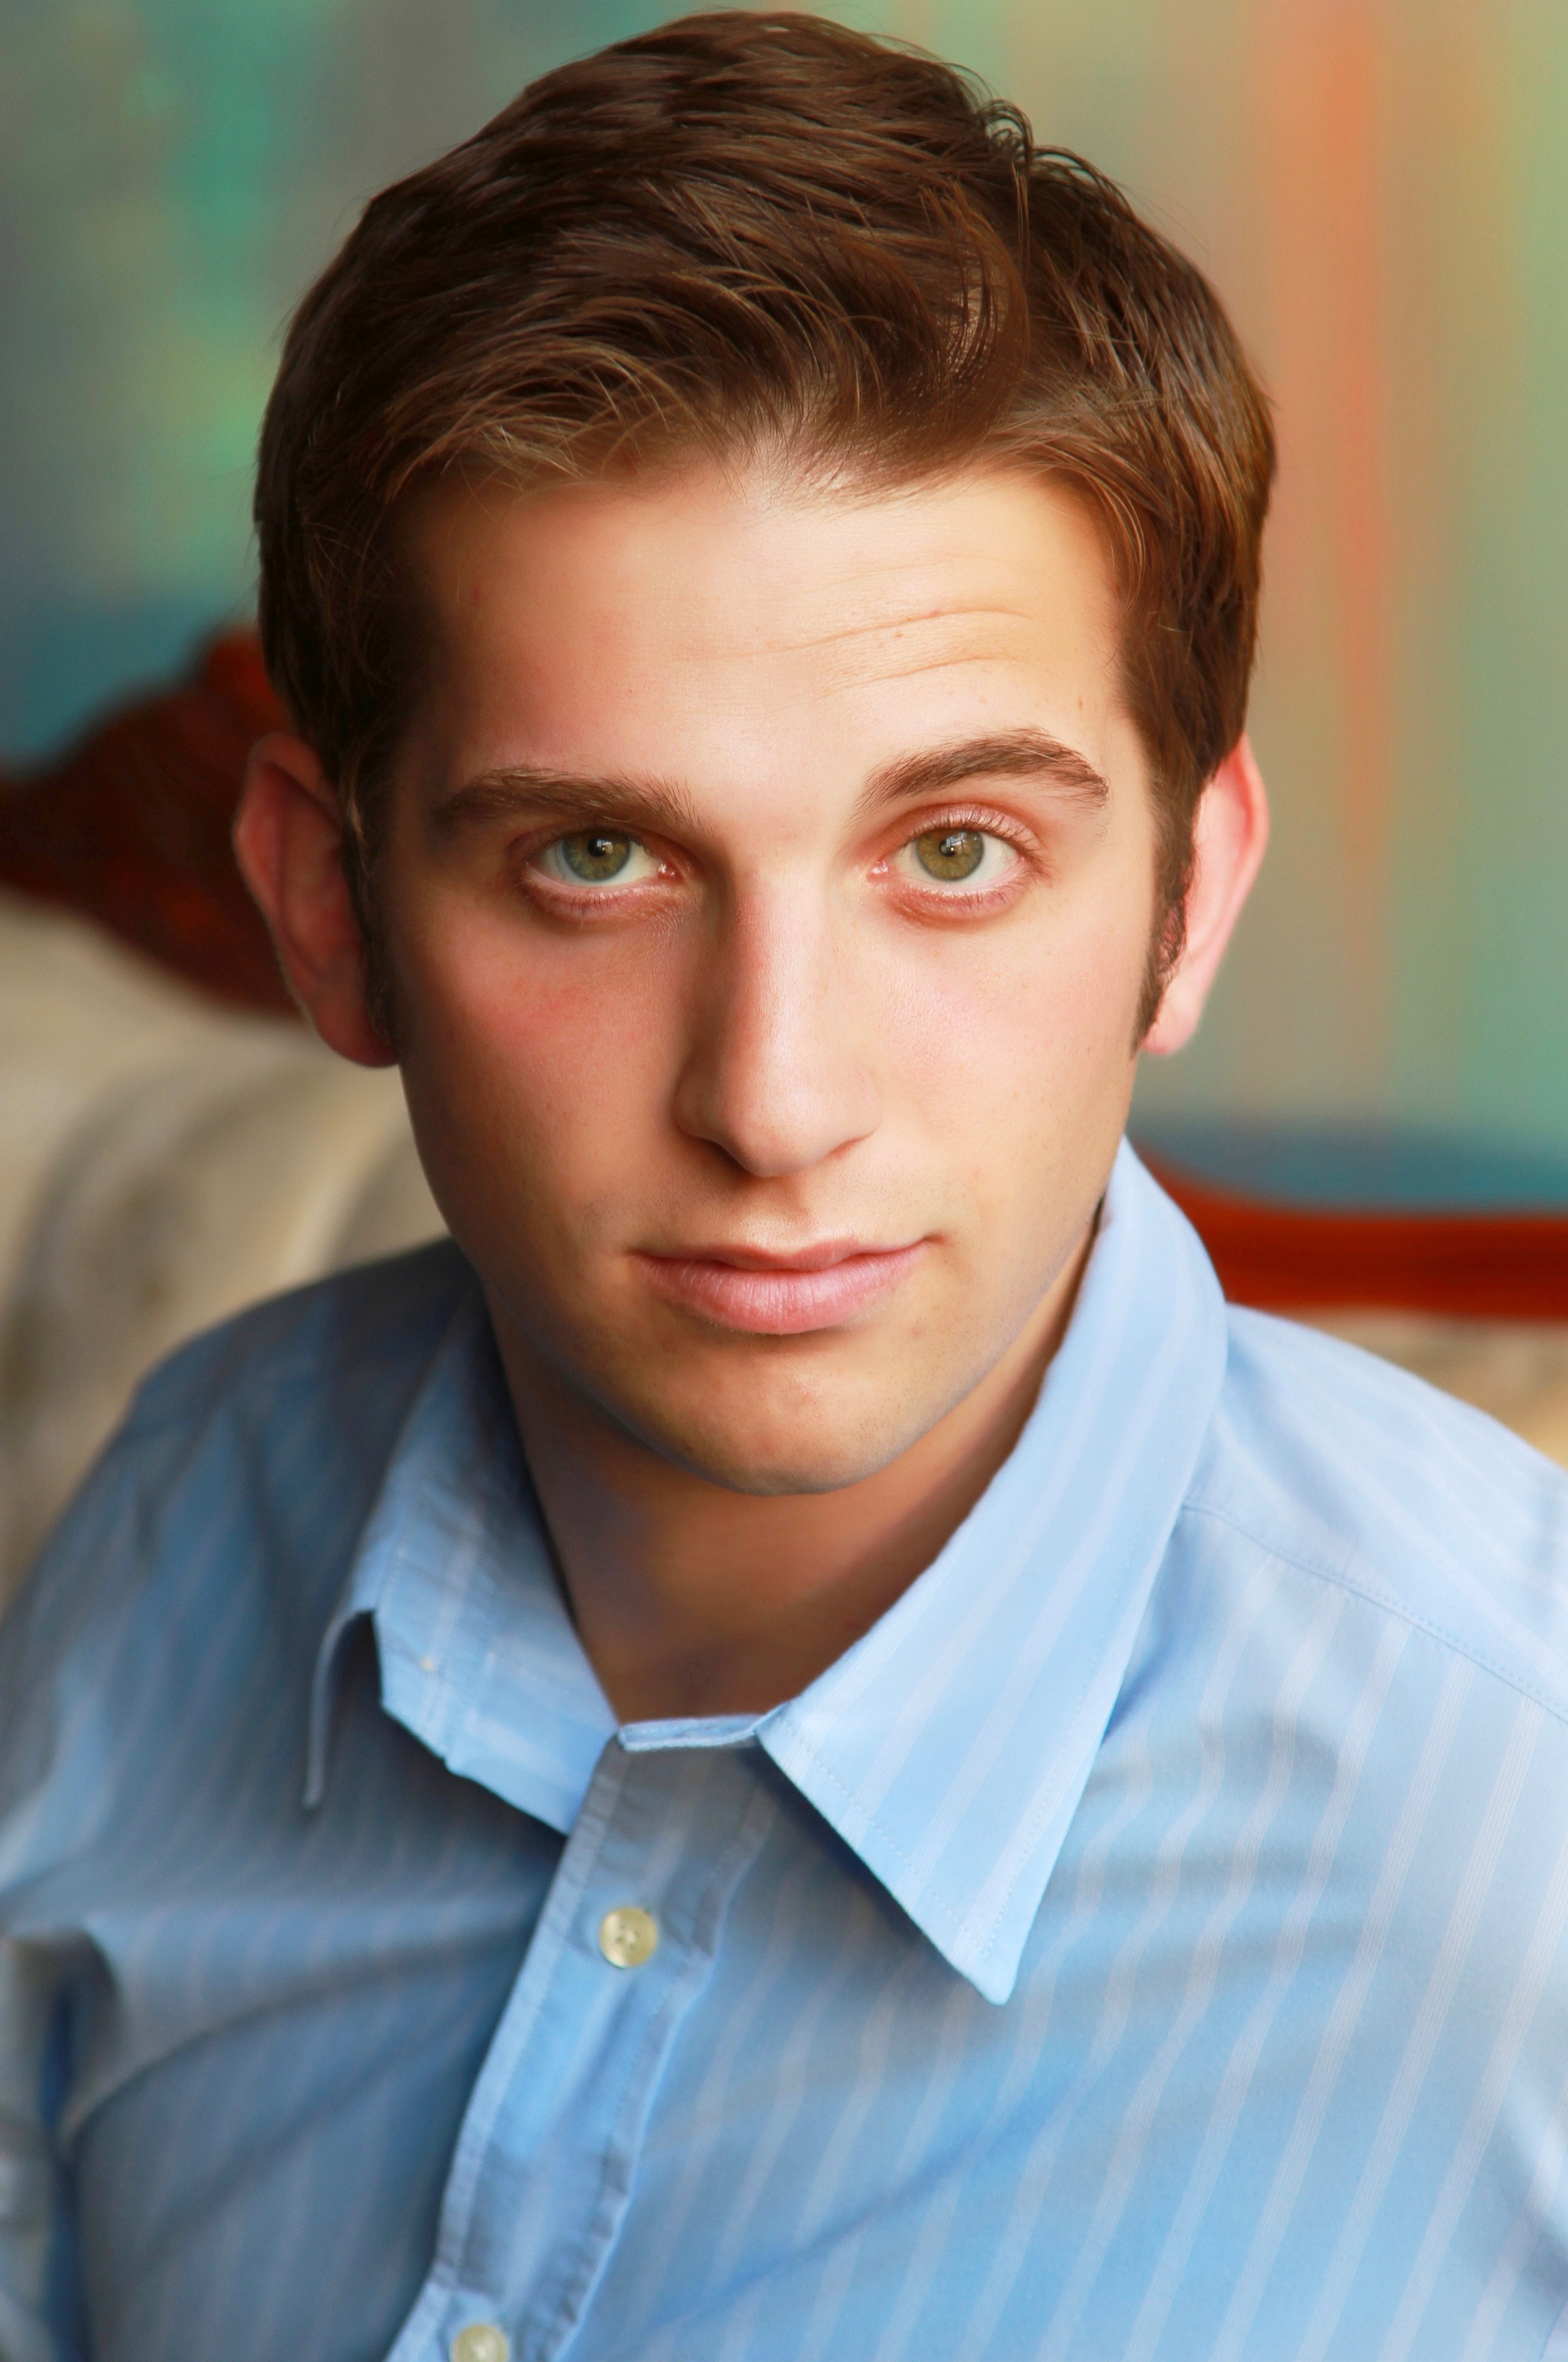 Male model Headshot in button up shirt